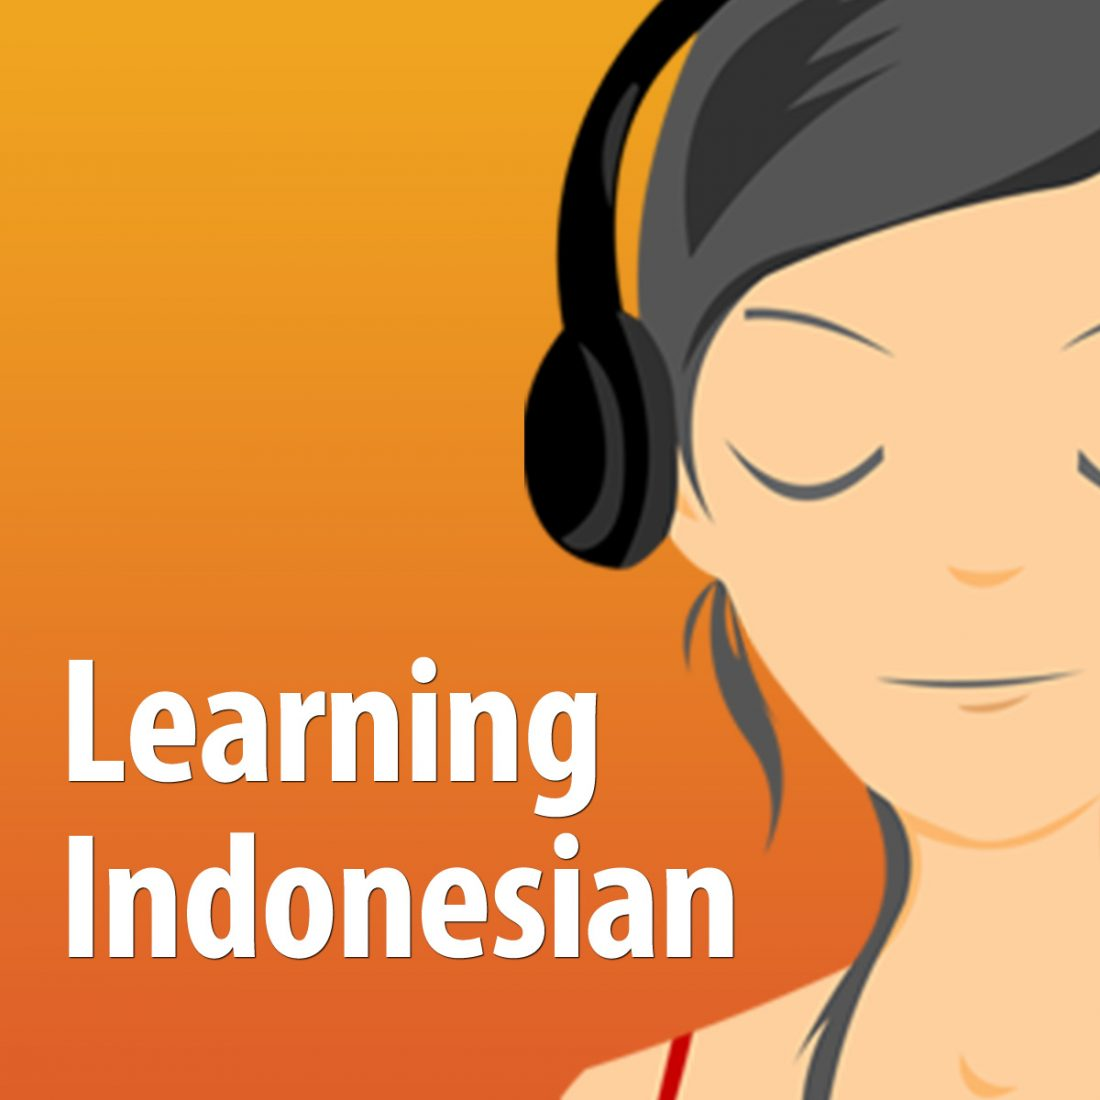 Learning Indonesian is a great travel app to bring the Gili Islands to learn Indonesian.